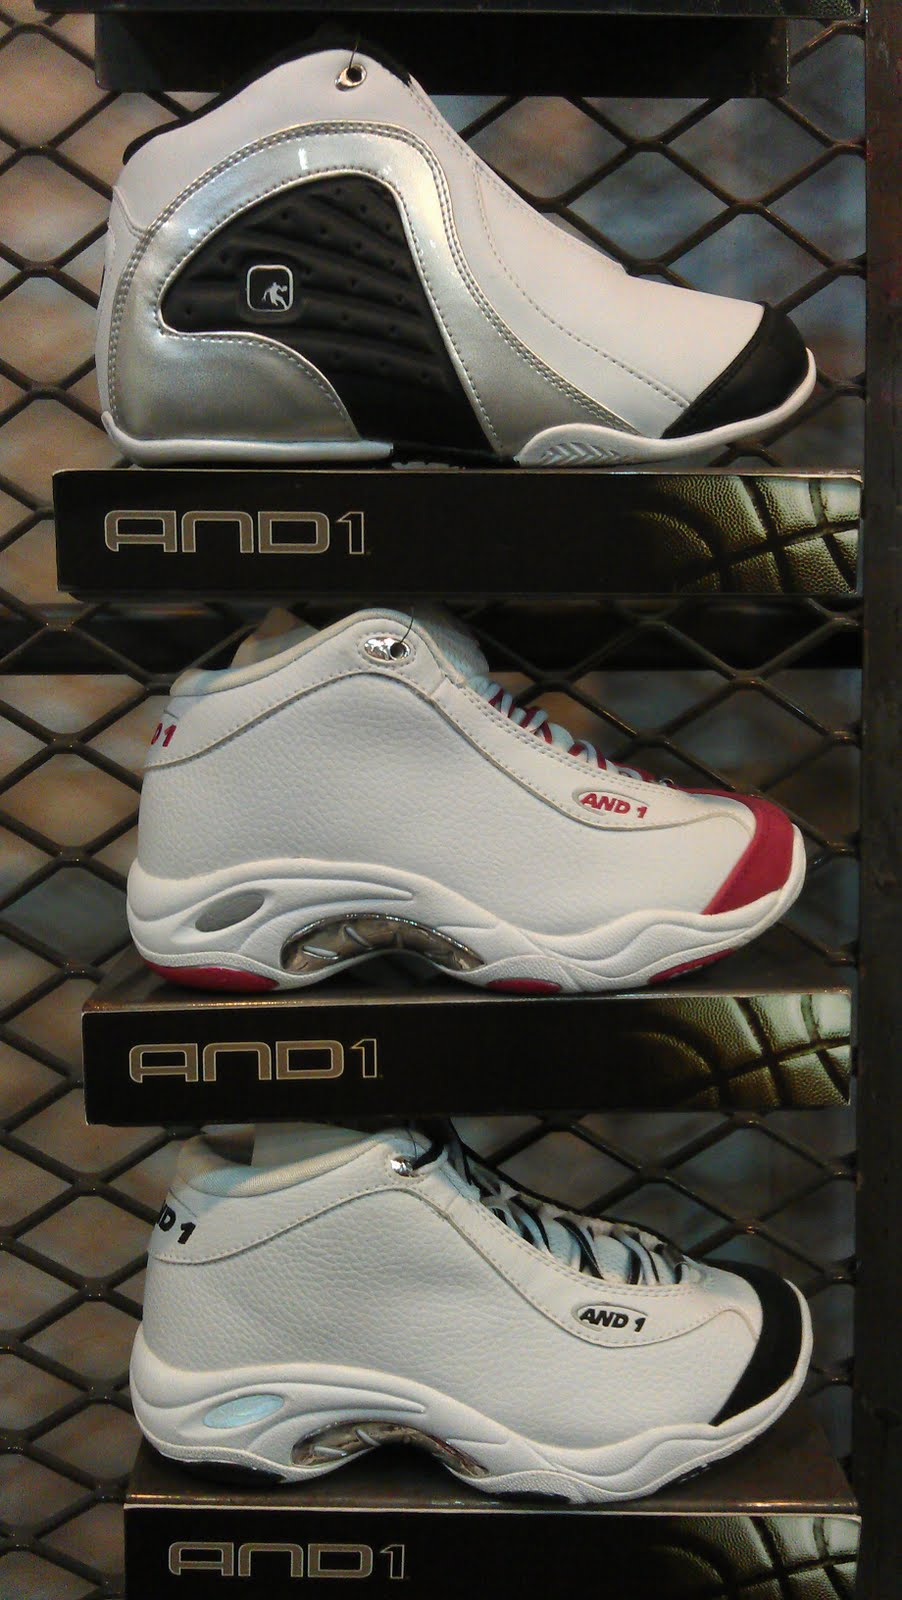 8339fcbf159d Release Mid Php 2995 (White Black Red) as worn by Francis Froilan   Mico  Reyes (kids)